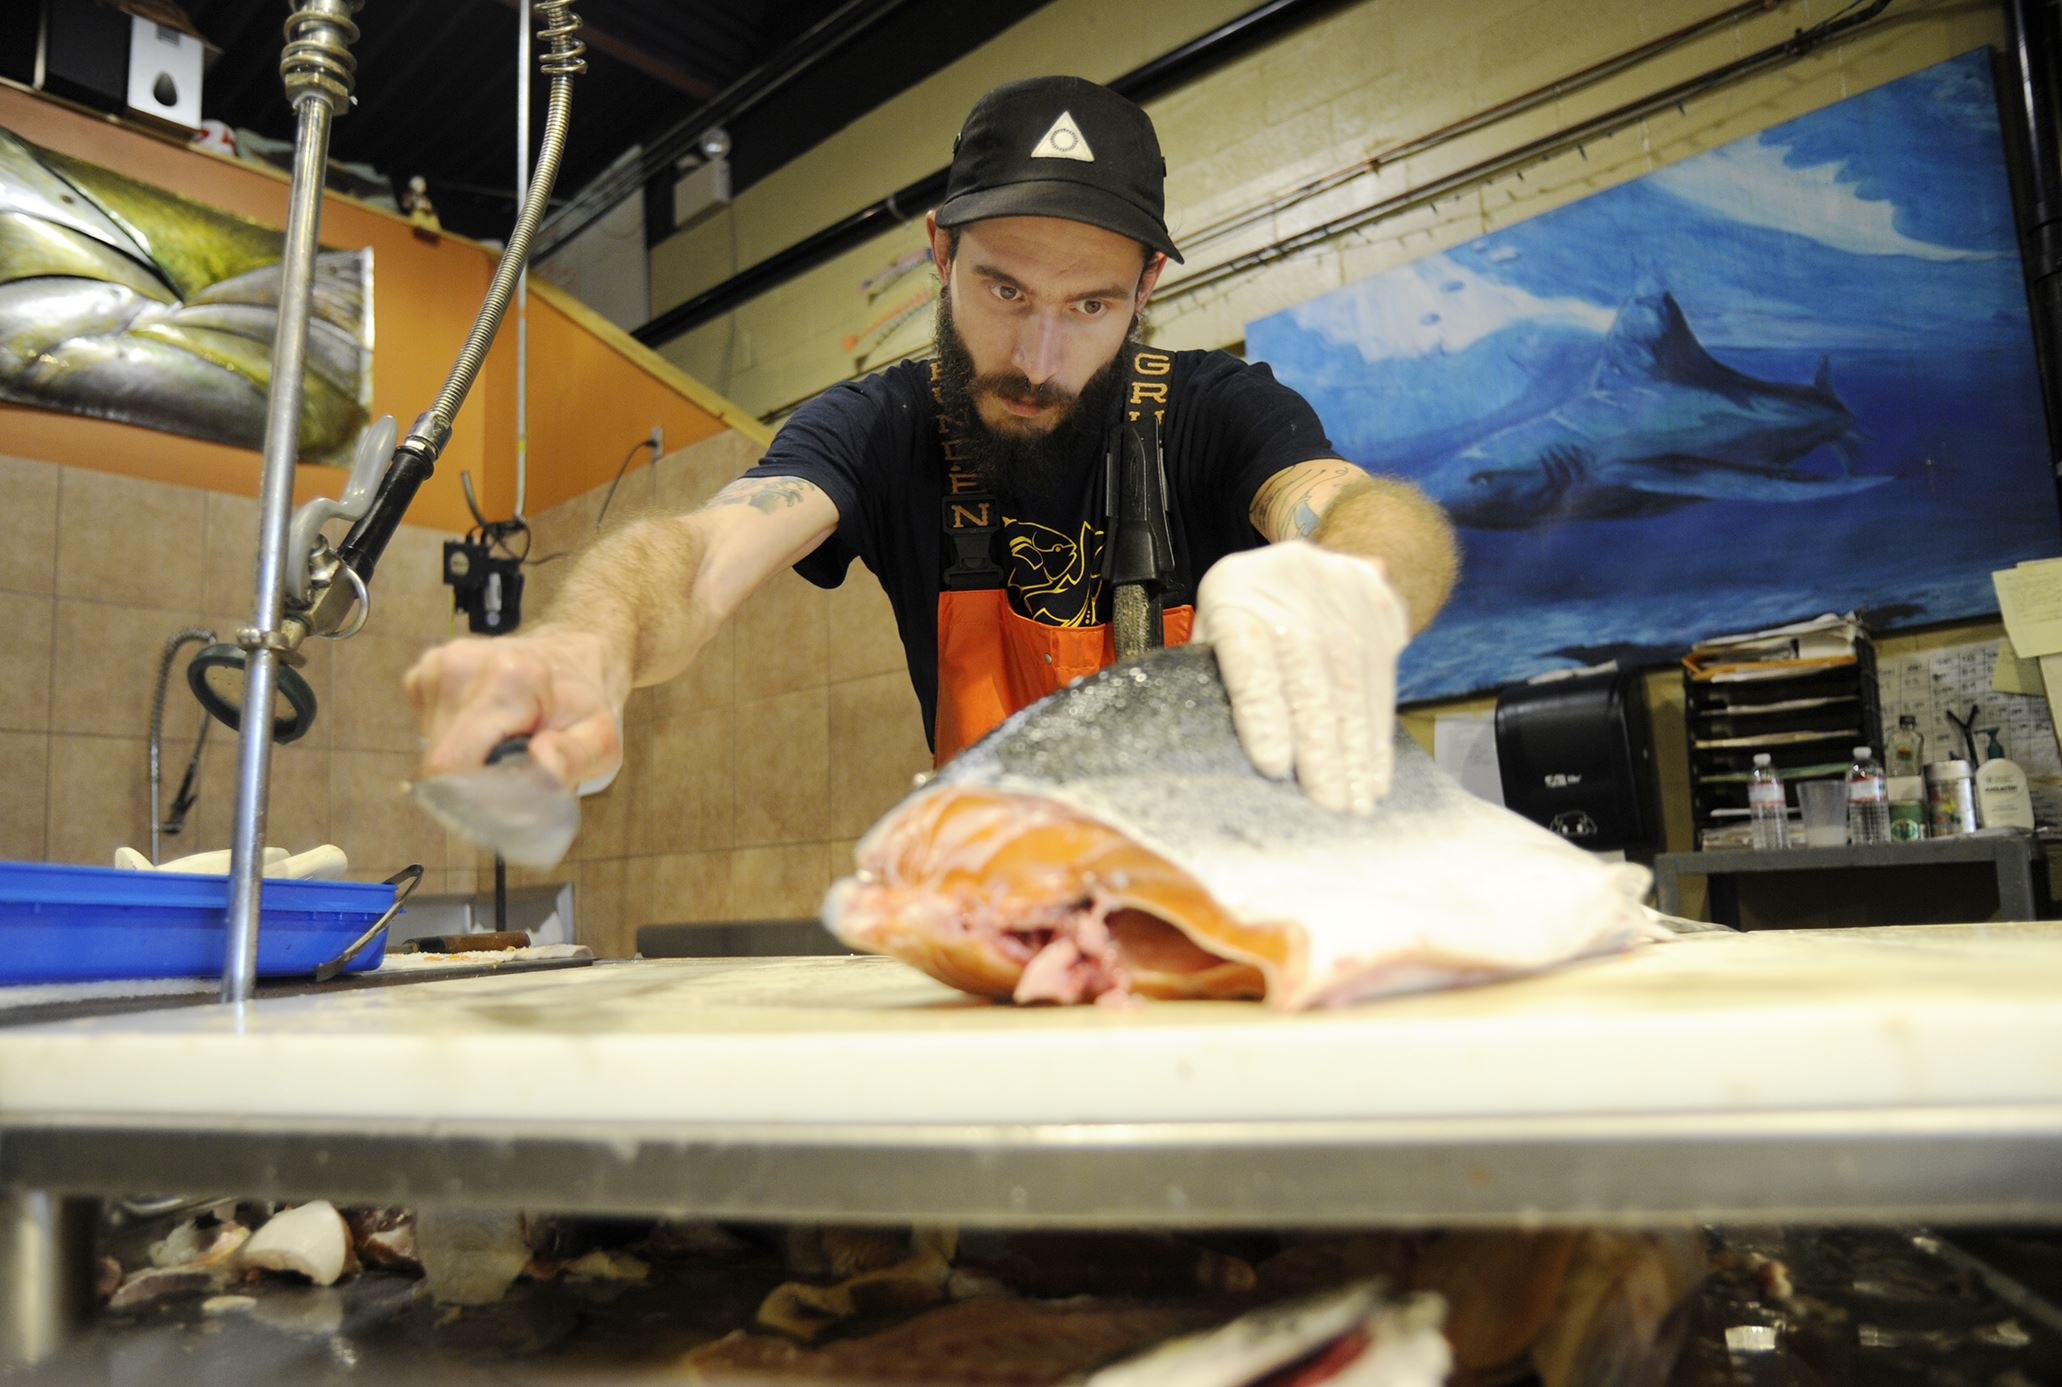 20140724CMTableMag003-2 Kyle Houghtelin of Braddock cleans a salmon at Penn Avenue Fish Company.